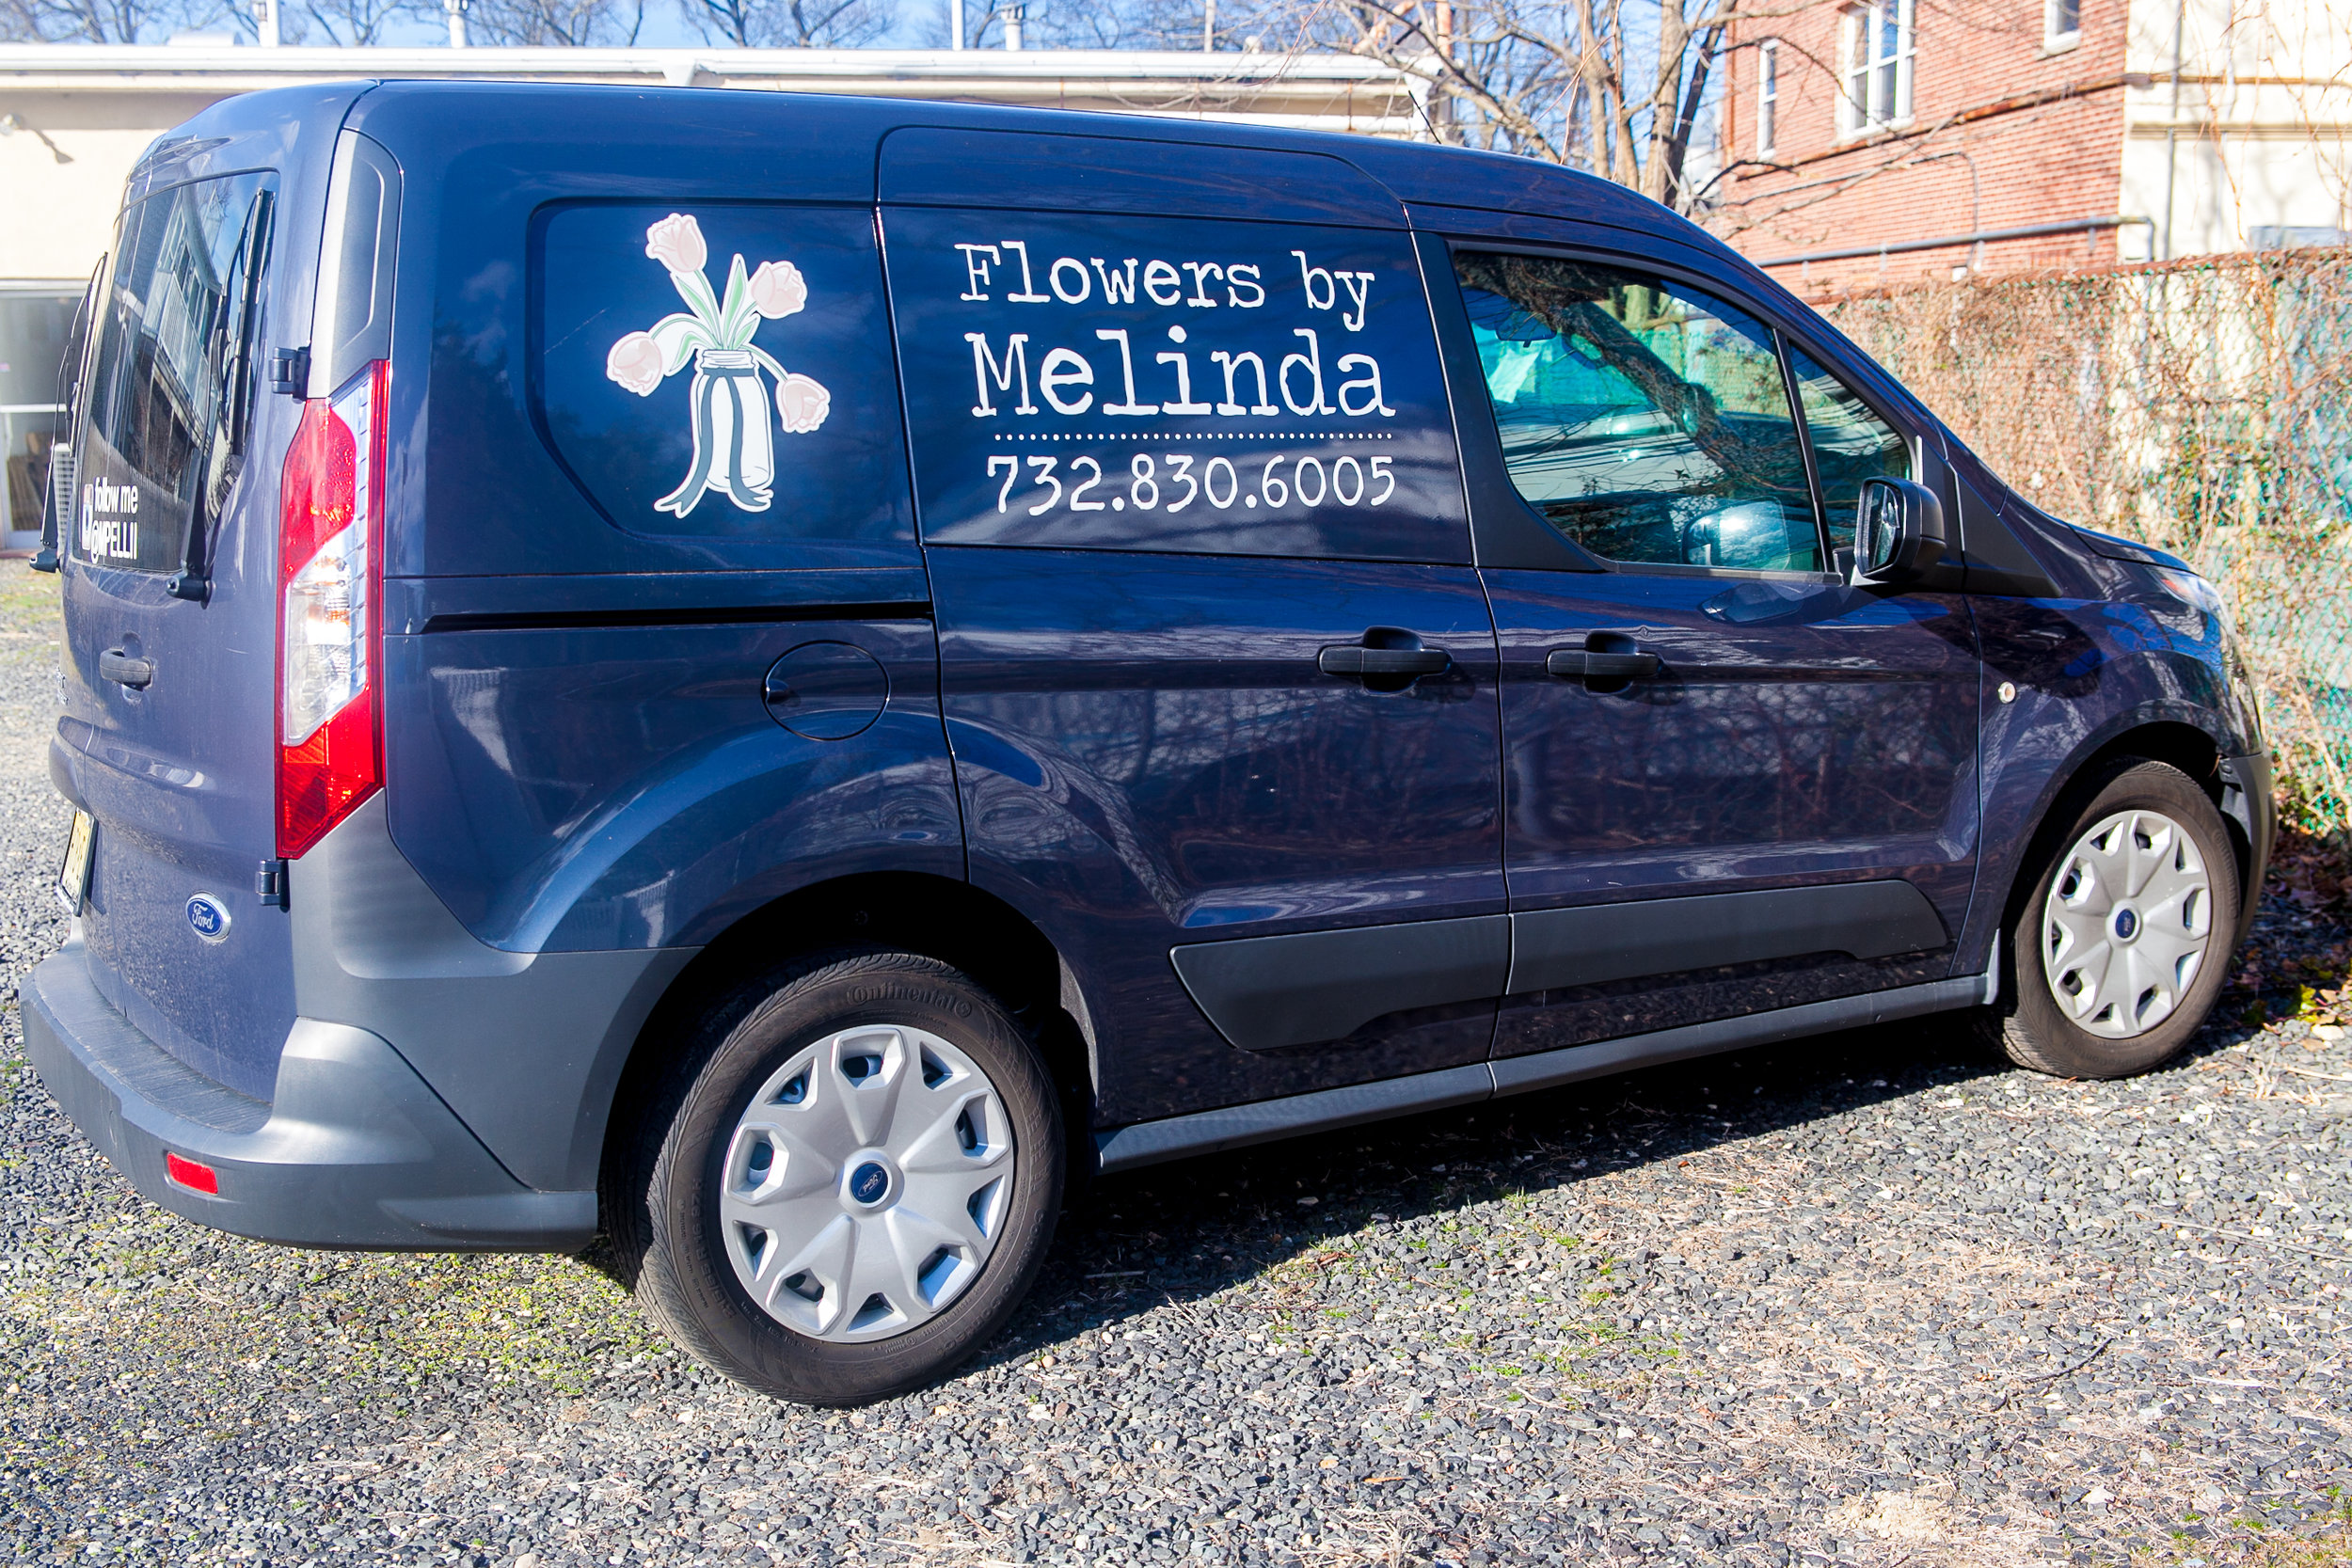 Website-Promo Melinda Flowers 2017-14.JPG